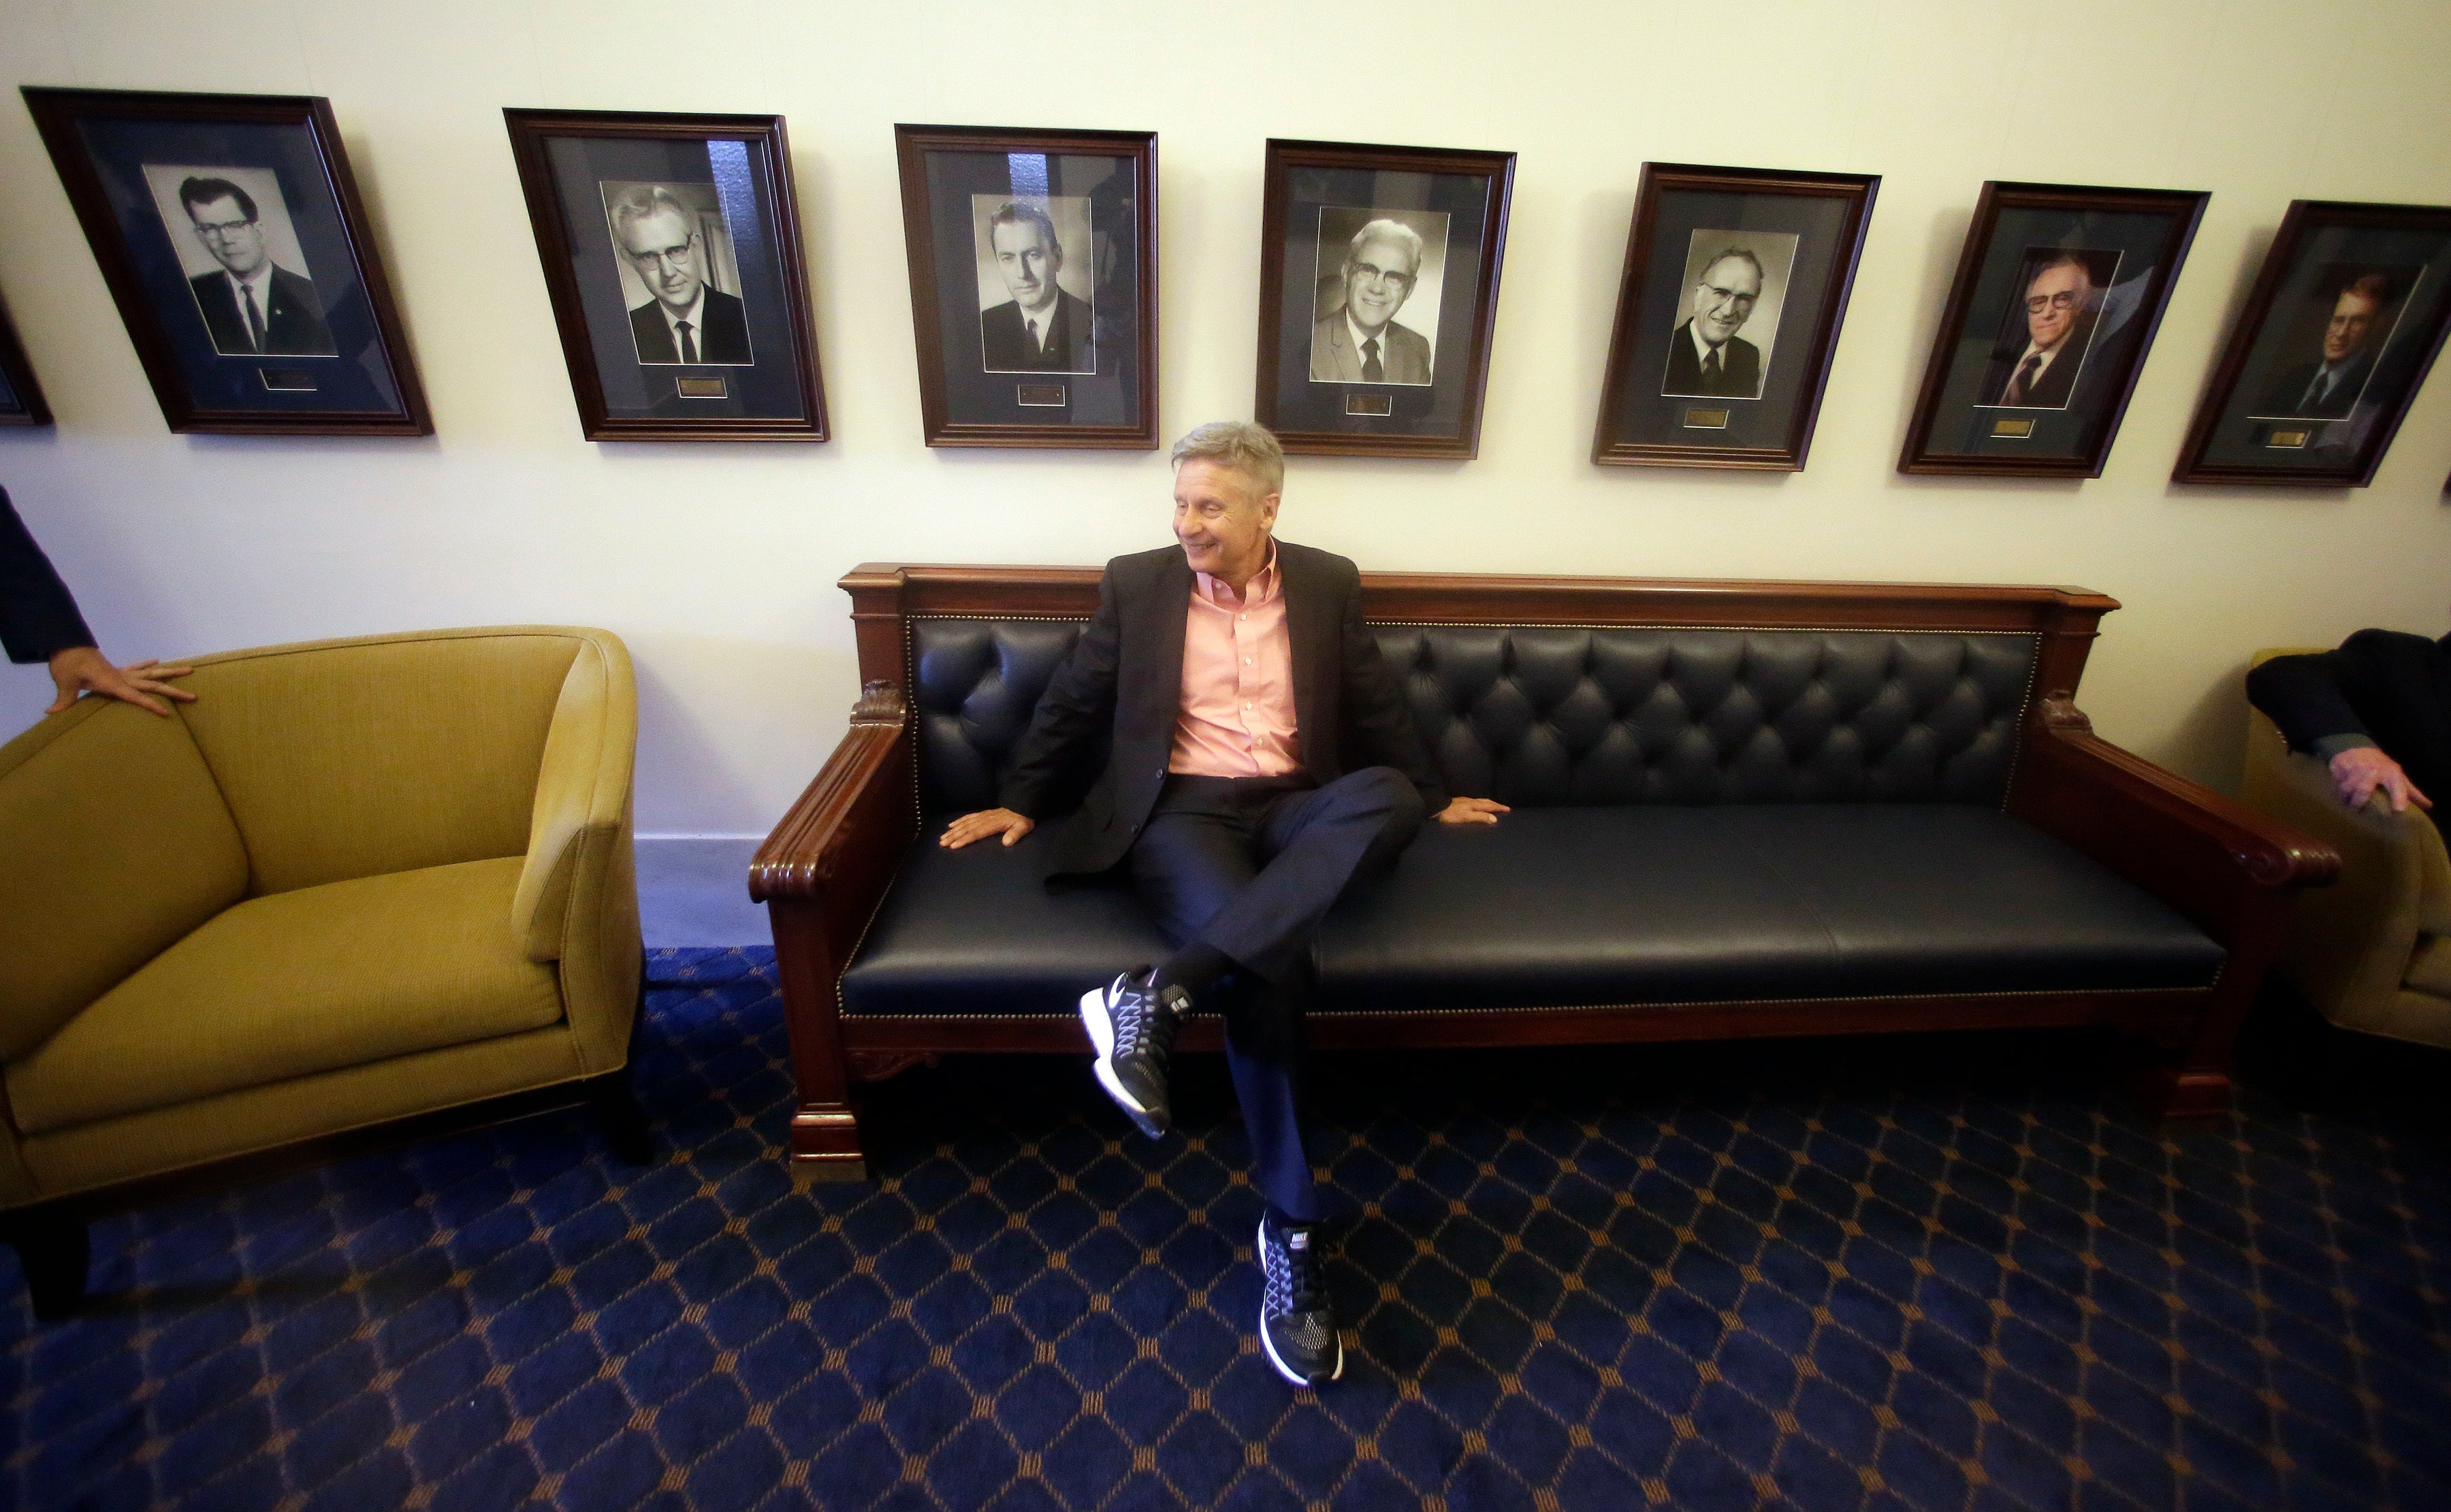 Libertarian candidate and former New Mexico Gov. Gary Johnson waits to speak with legislators at the Utah State Capitol Wednesday, May 18, 2016, in Salt Lake City. Seizing new fuel for his appeal to Donald Trump's critics, Johnson has joined forces with another former Republican governor to strengthen his Libertarian presidential bid. William Weld, who served two terms as the Republican governor of Massachusetts in the 1990s, will announce plans Thursday to seek the Libertarian Party's vice presidential nomination, Johnson confirmed in a Wednesday interview with the Associated Press. (AP Photo/Rick Bowmer)